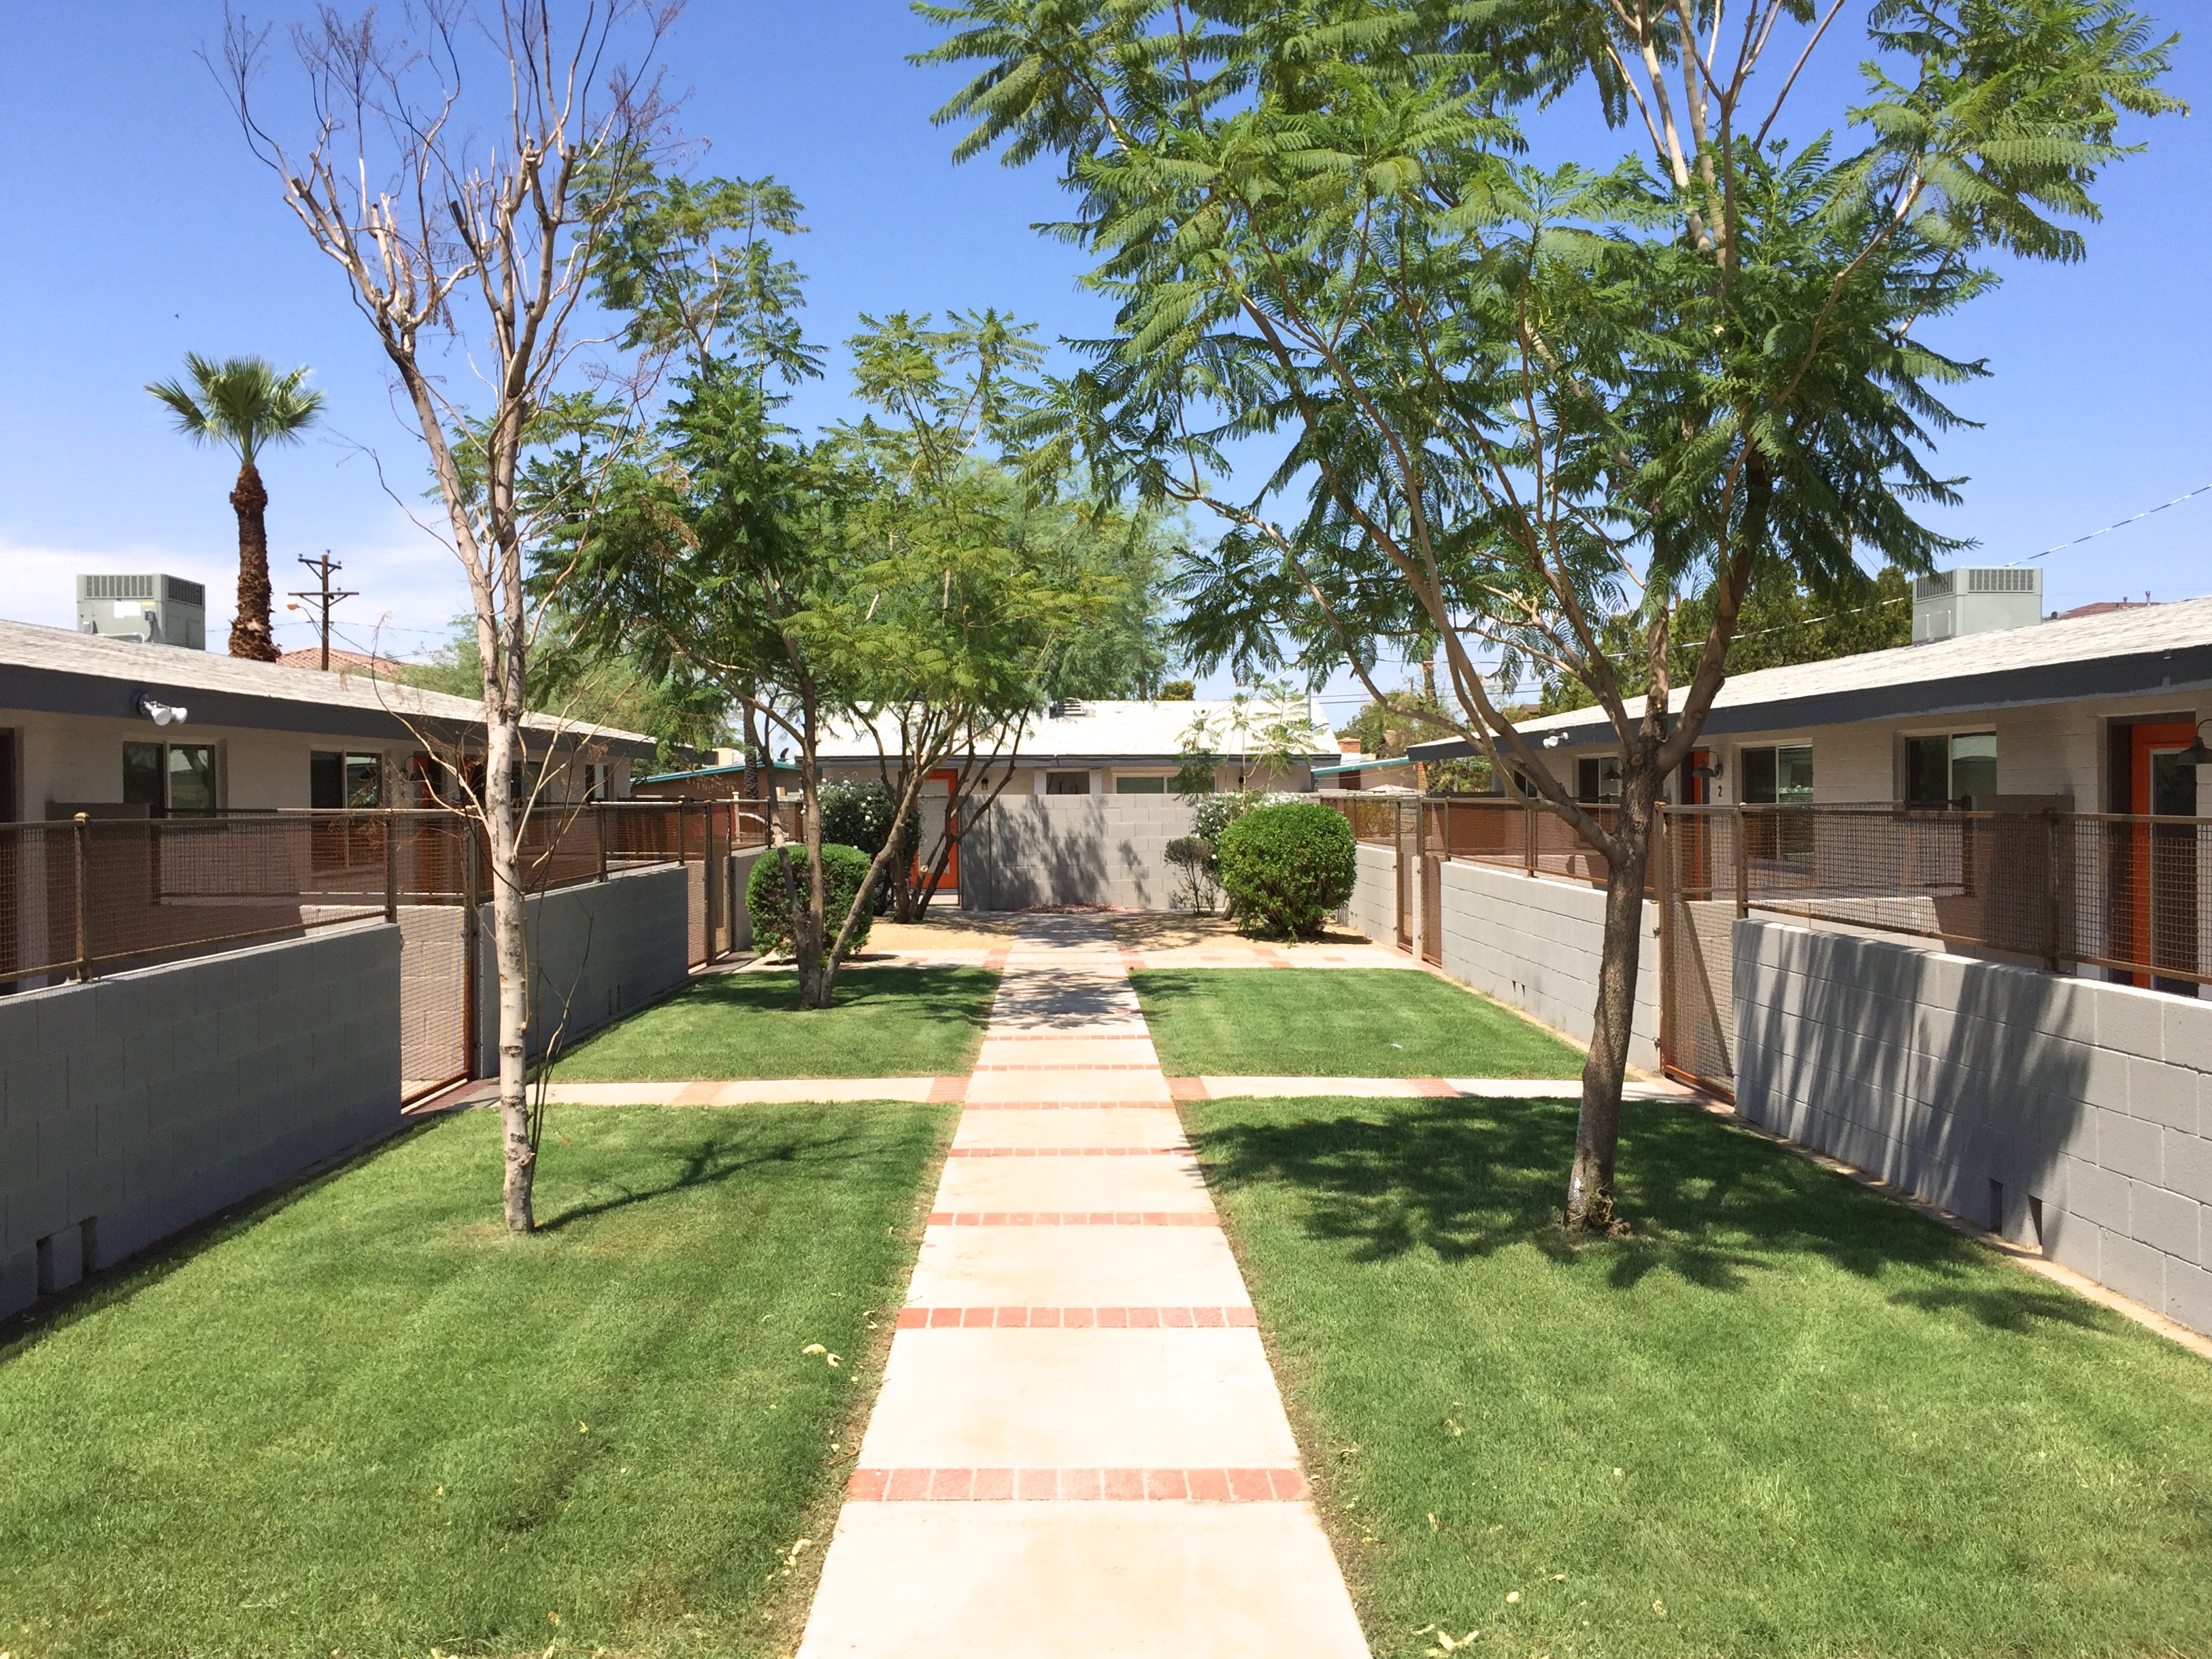 27th Street 3.0 | Biltmore Phoenix Multifamily Real Estate Investments